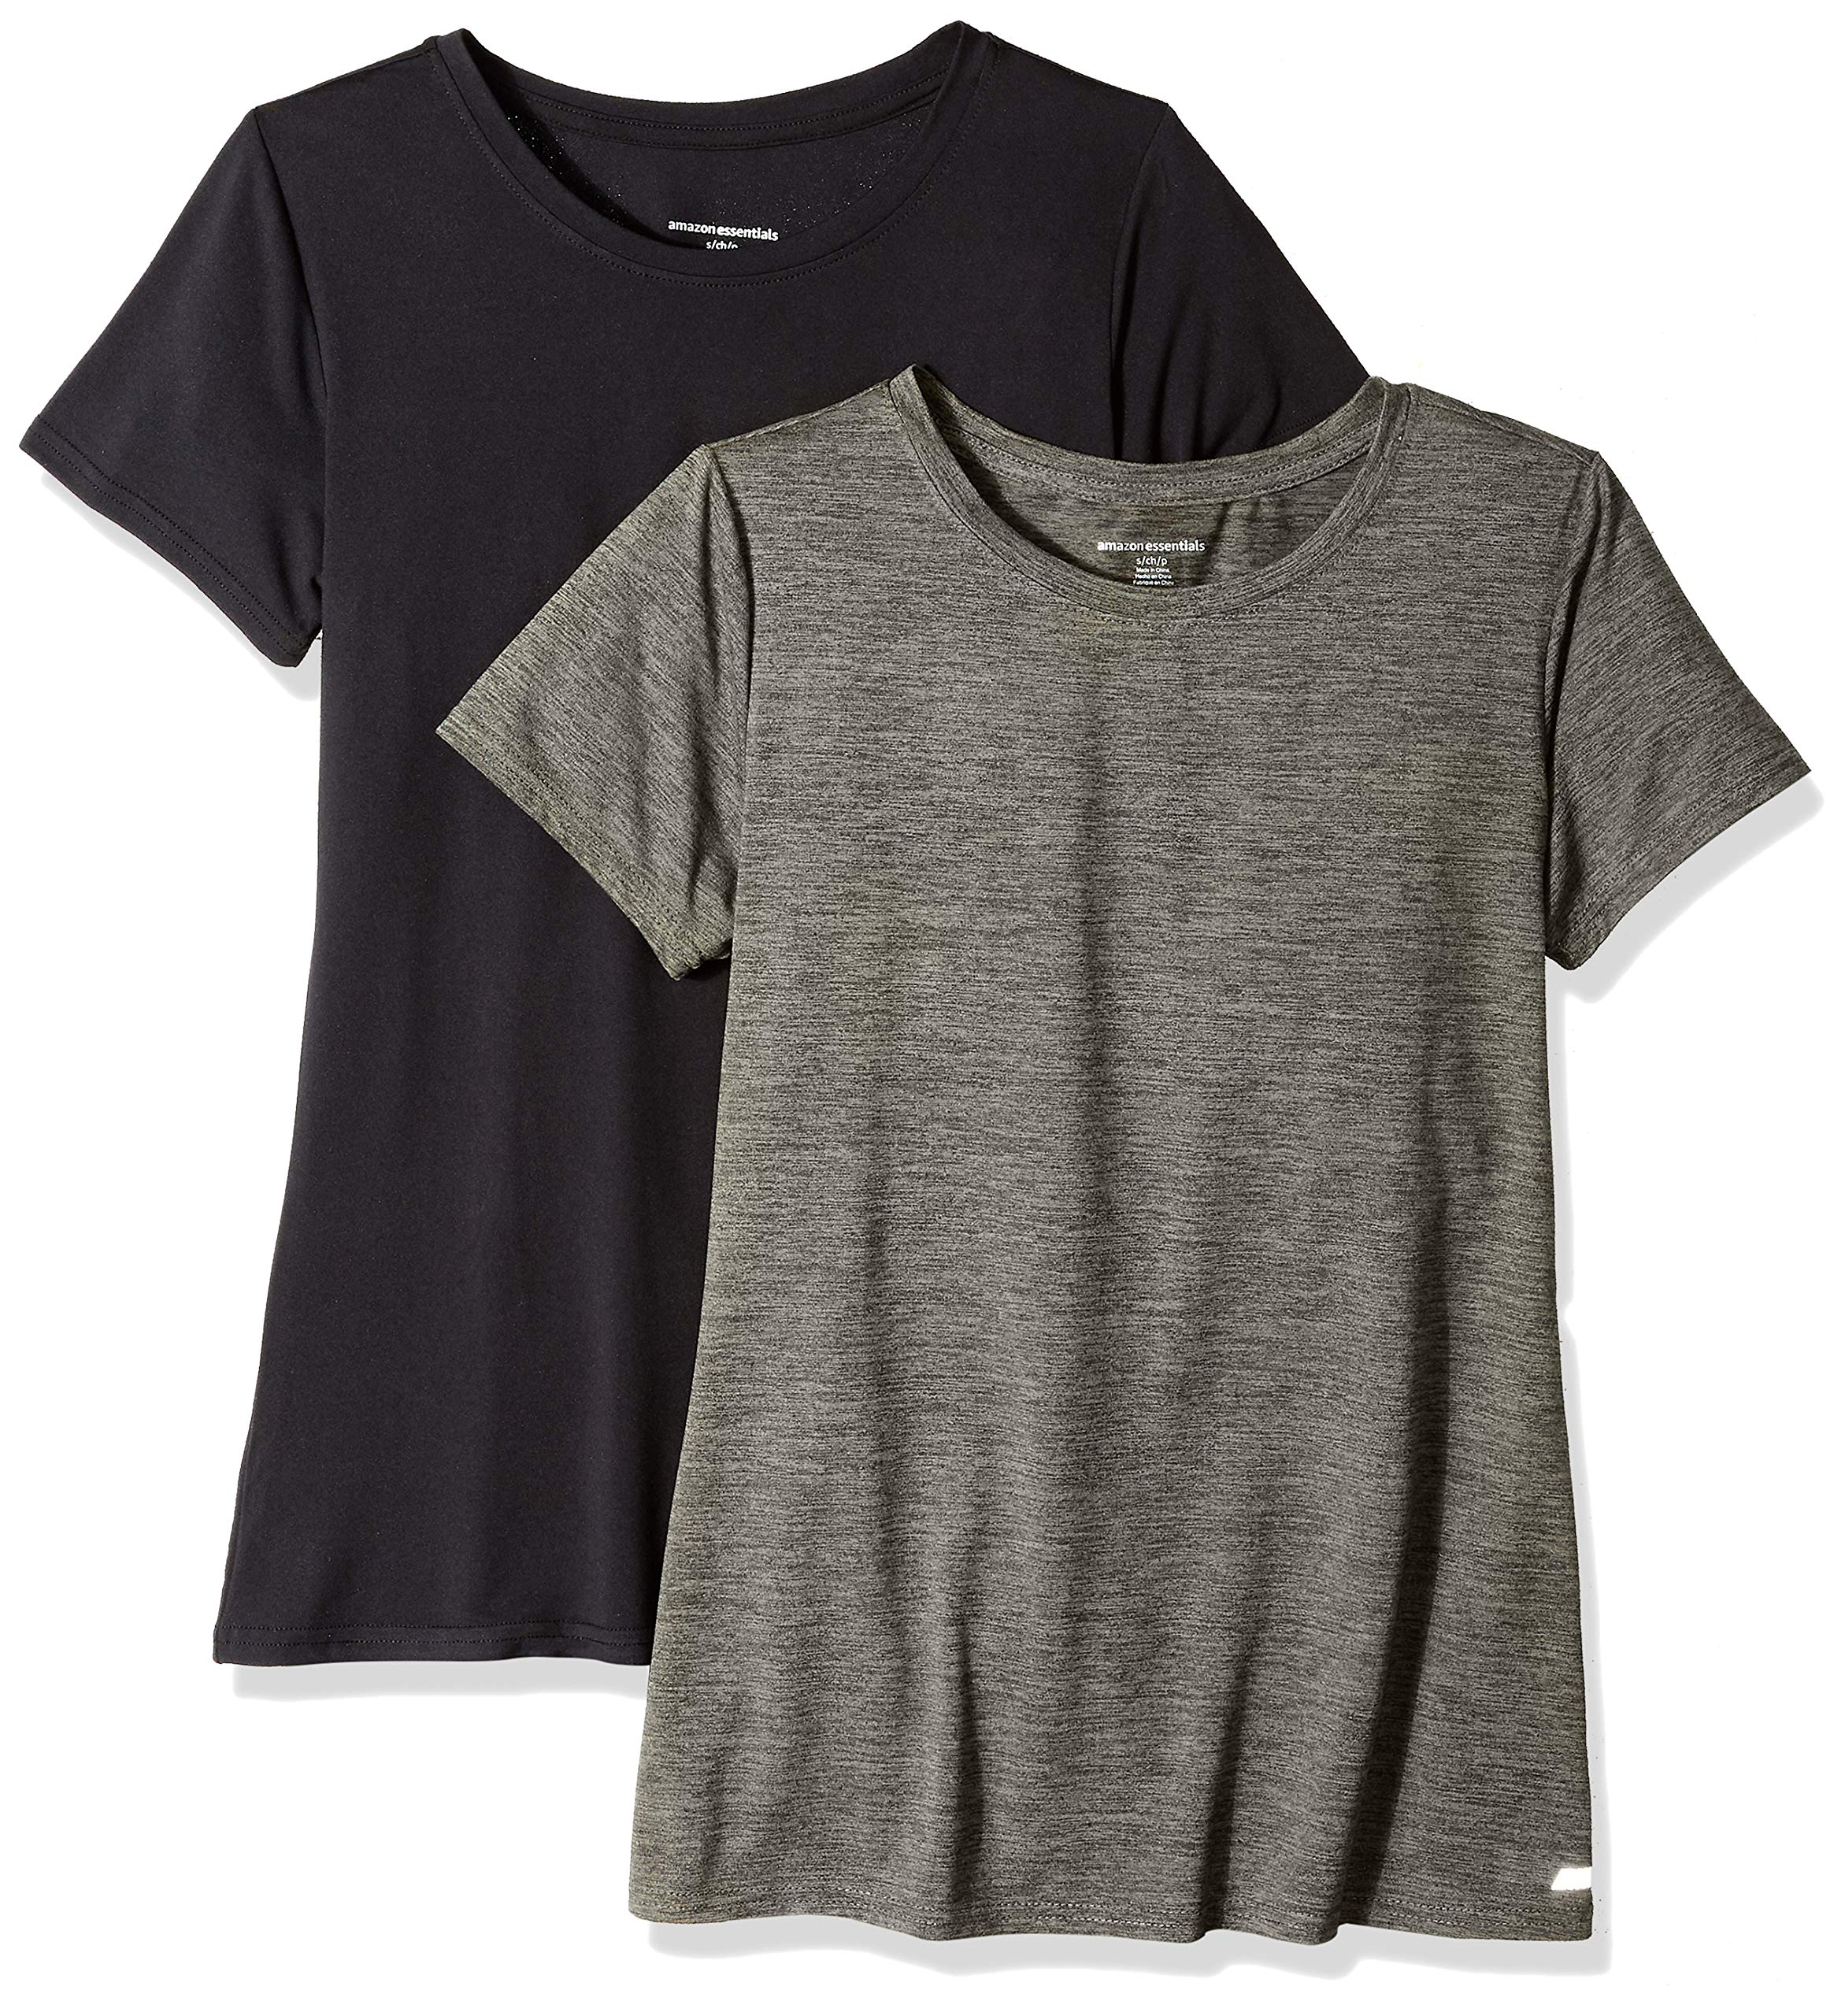 Amazon Essentials Women's 2-Pack Tech Stretch Short-Sleeve Crewneck T-Shirt, Olive Space dye/Black, X-Small by Amazon Essentials